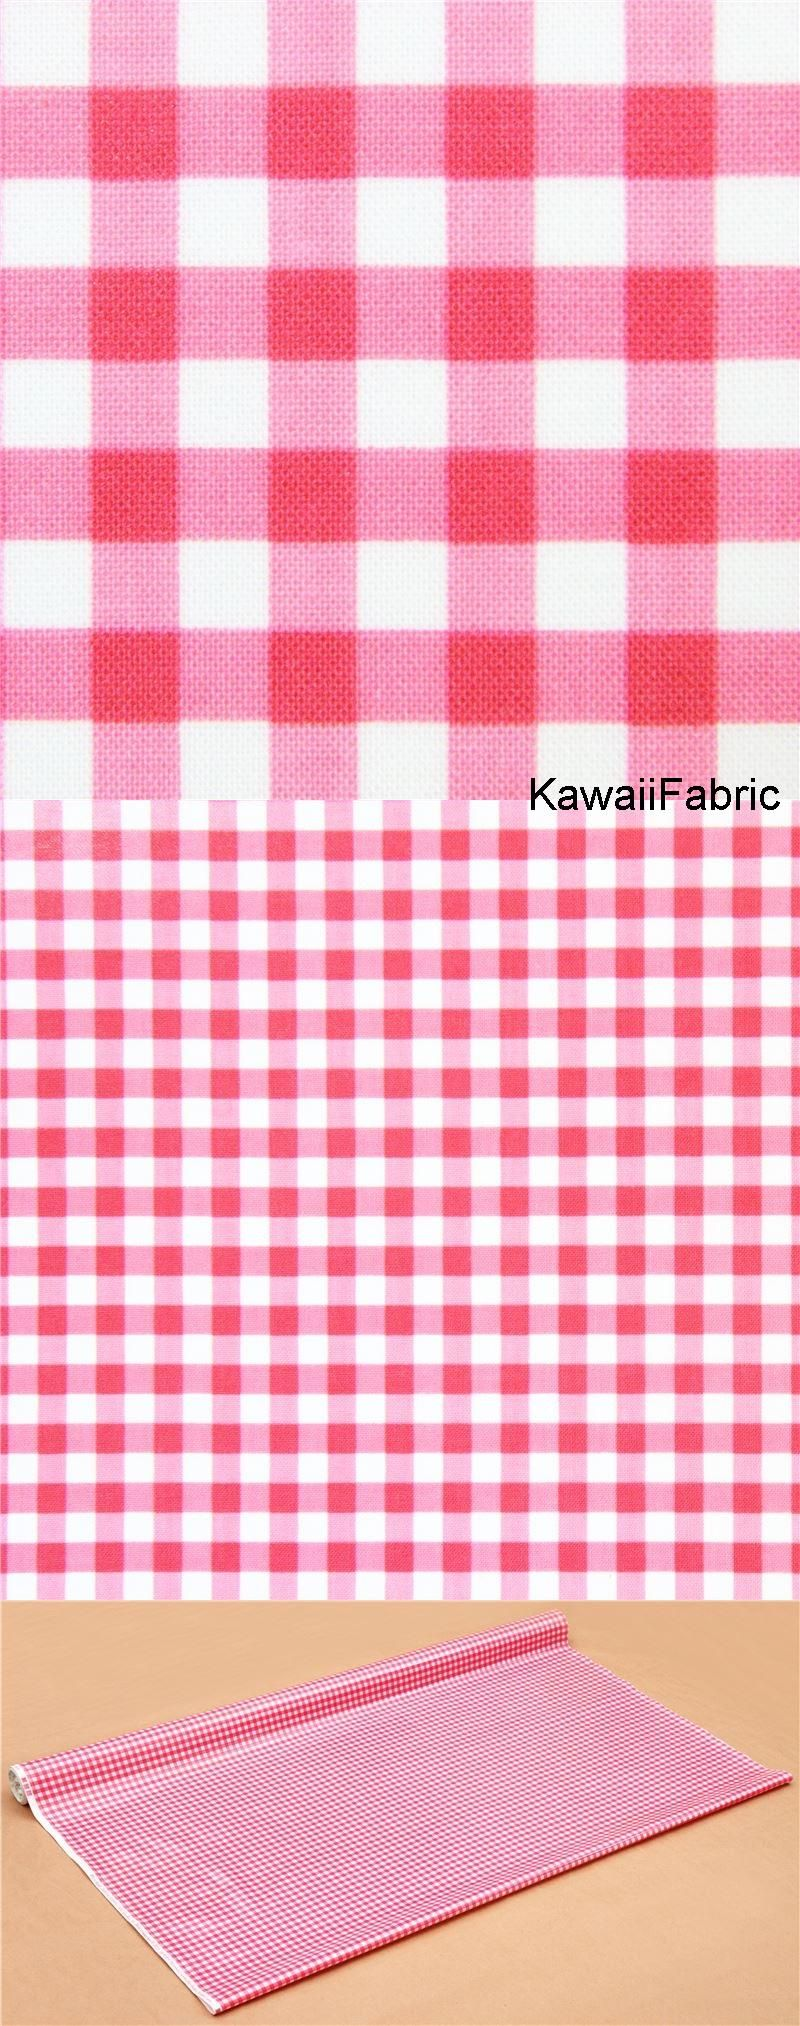 Image by Kawaii Fabric Shop on Tele cerate (IT